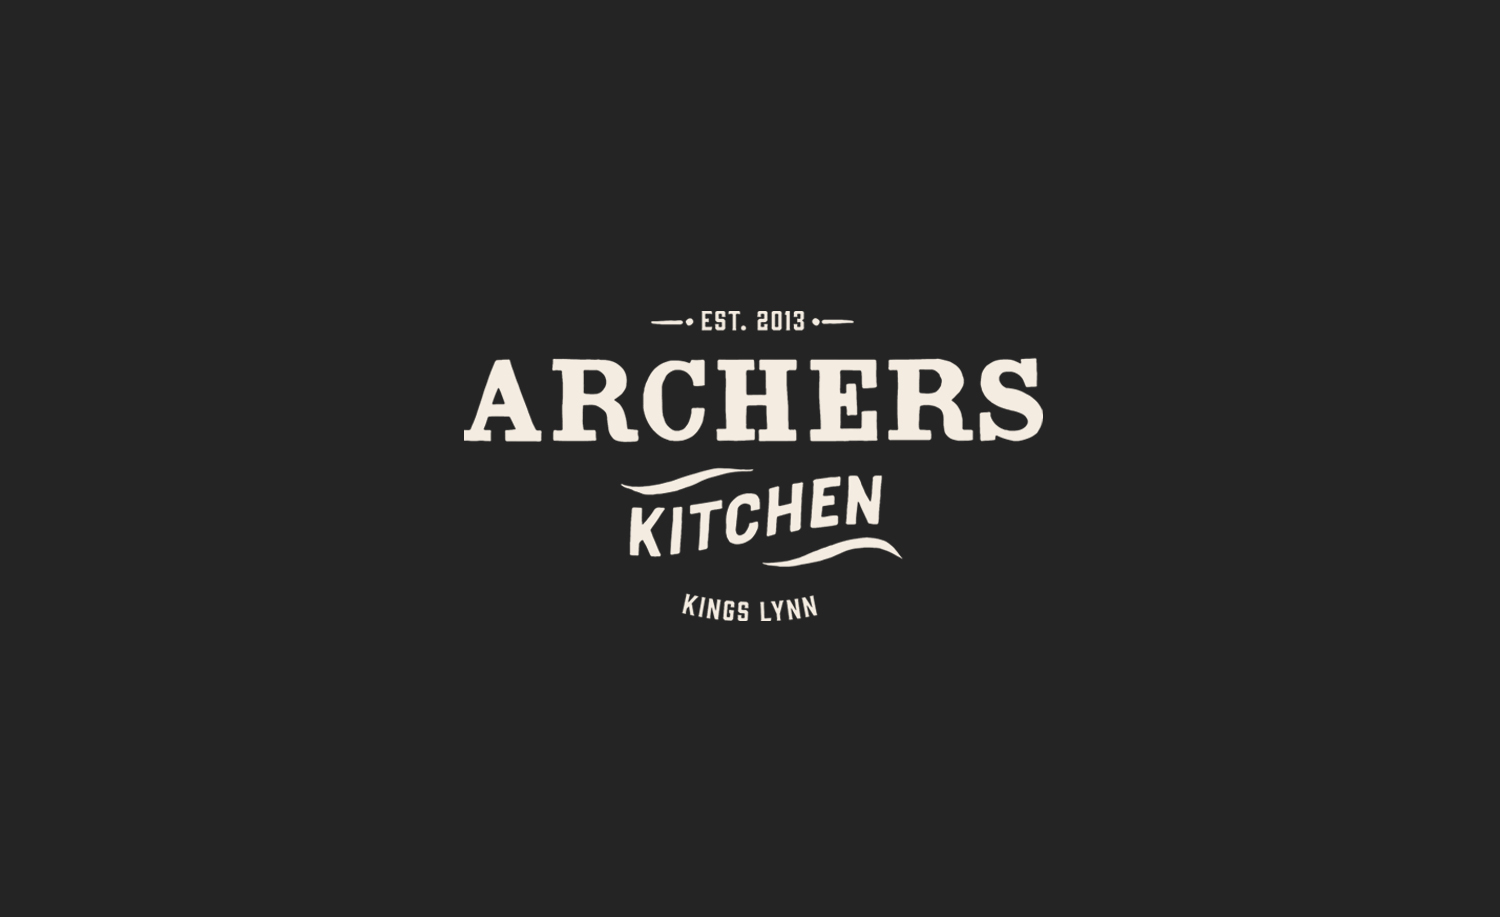 Archers Kitchen.jpg